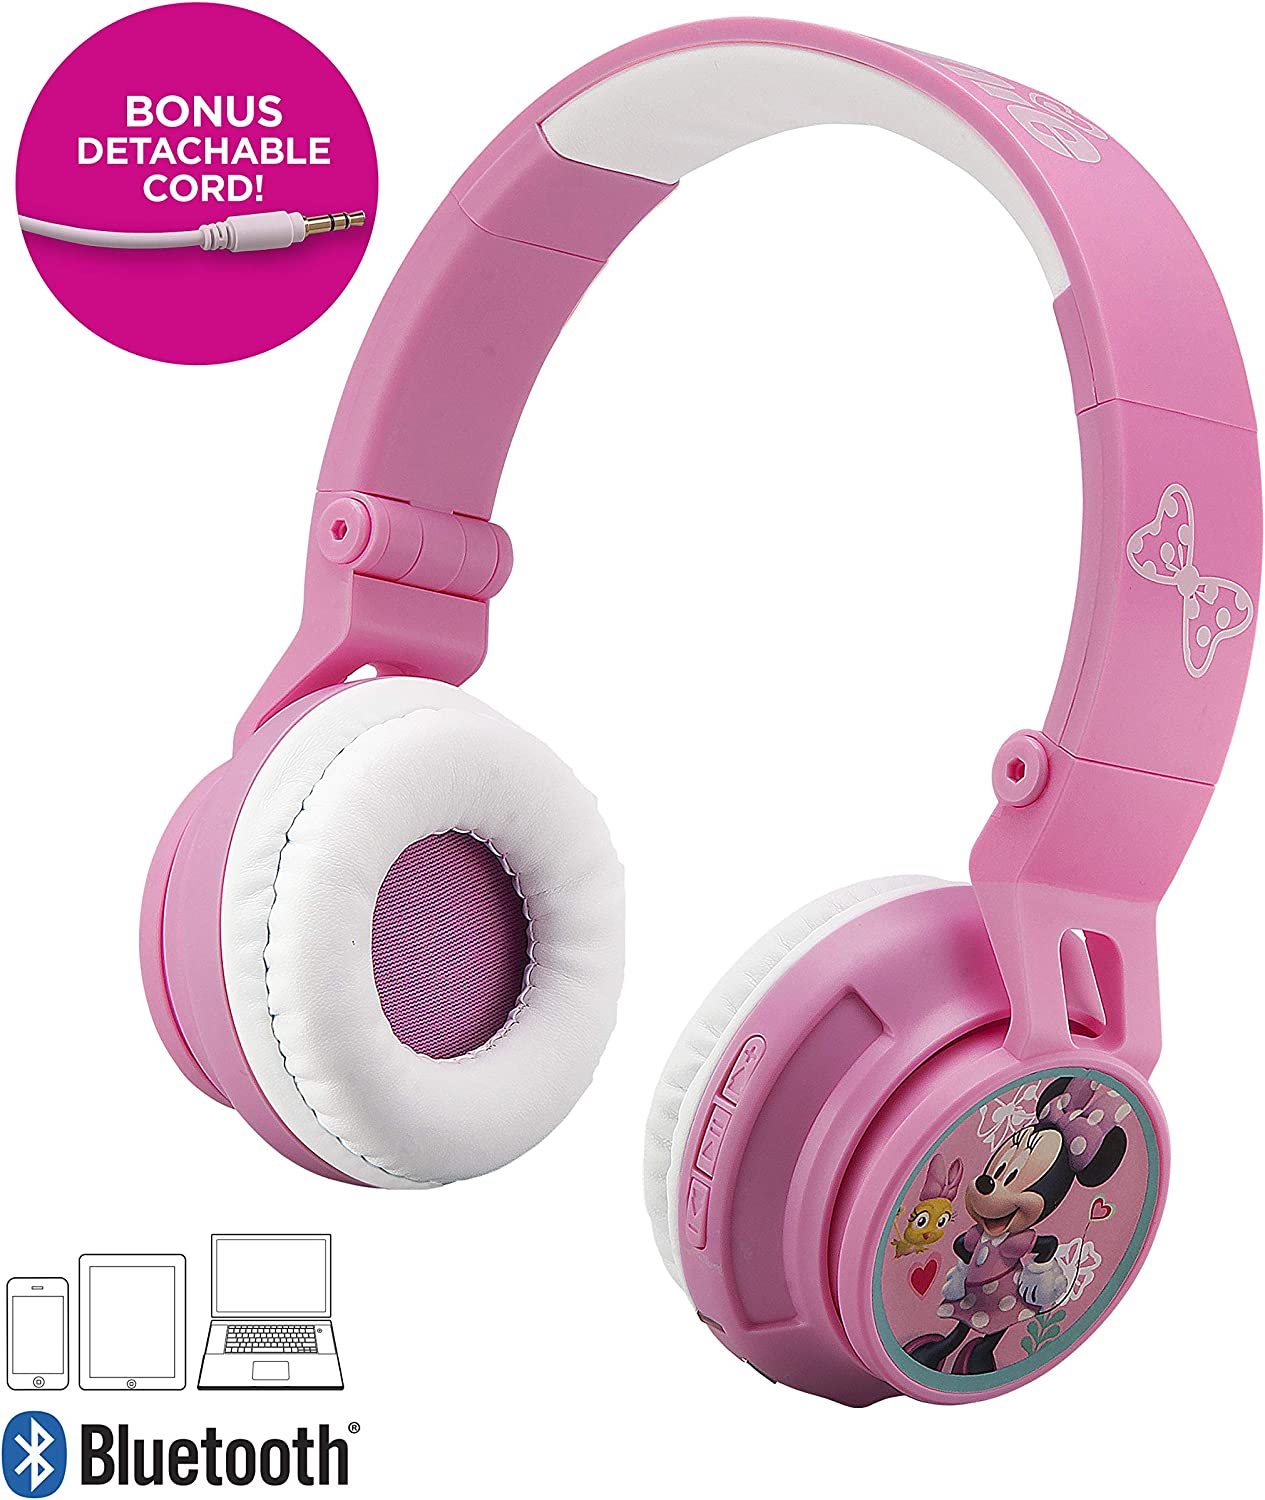 Disney Minnie Mouse Kids Bluetooth Headphones for Kids Wireless Rechargeable Foldable Bluetooth Headphones with Microphone Kid Friendly Sound & Bonus Detachable Cord